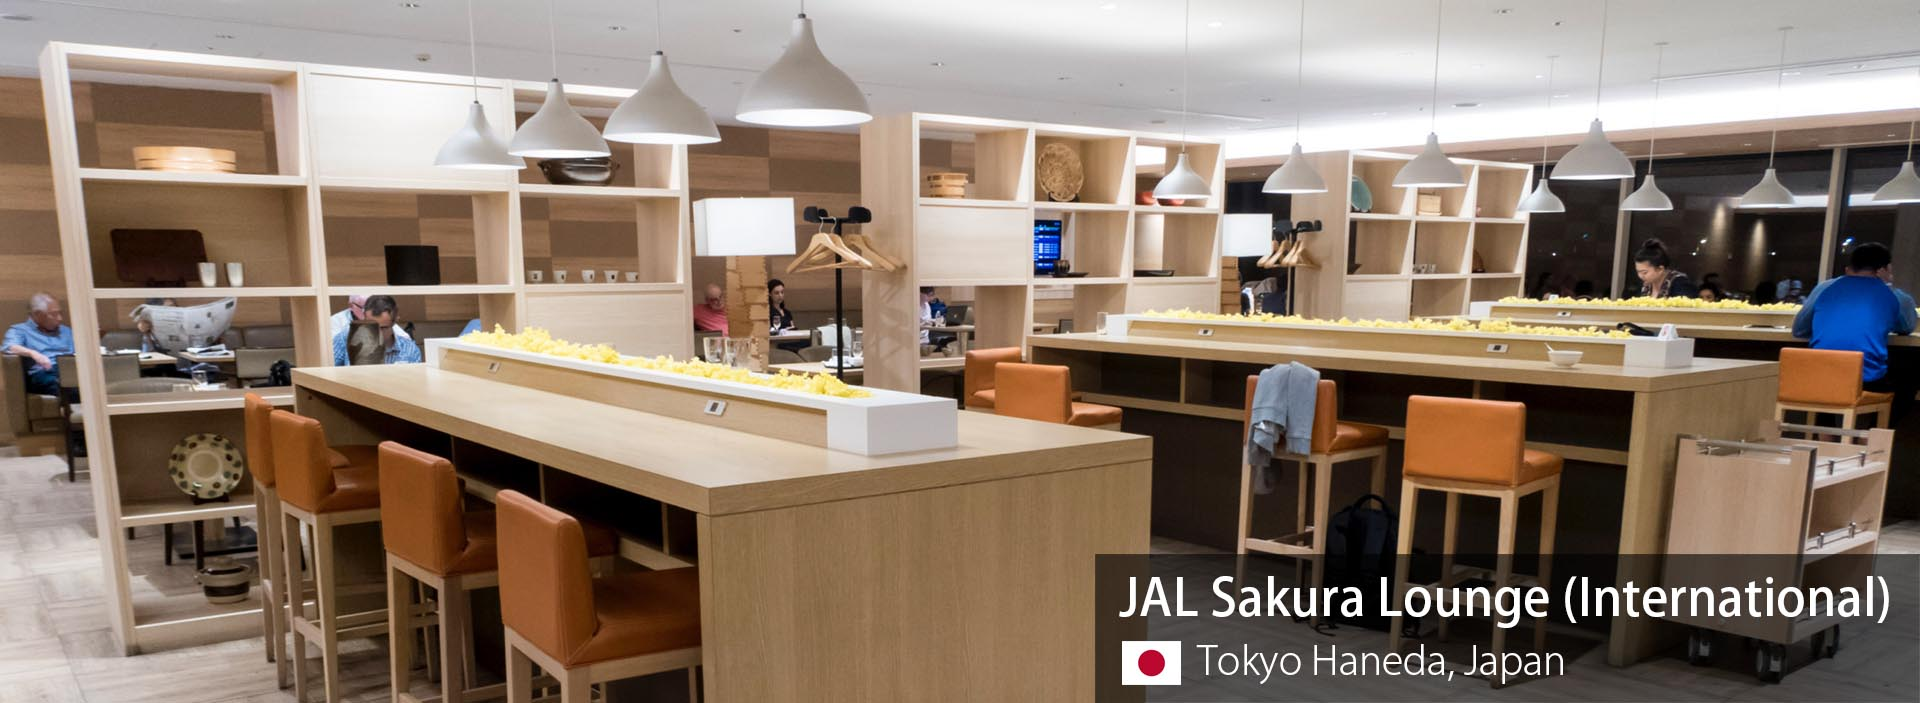 Review: JAL Sakura Lounge (International Terminal) at Tokyo Haneda